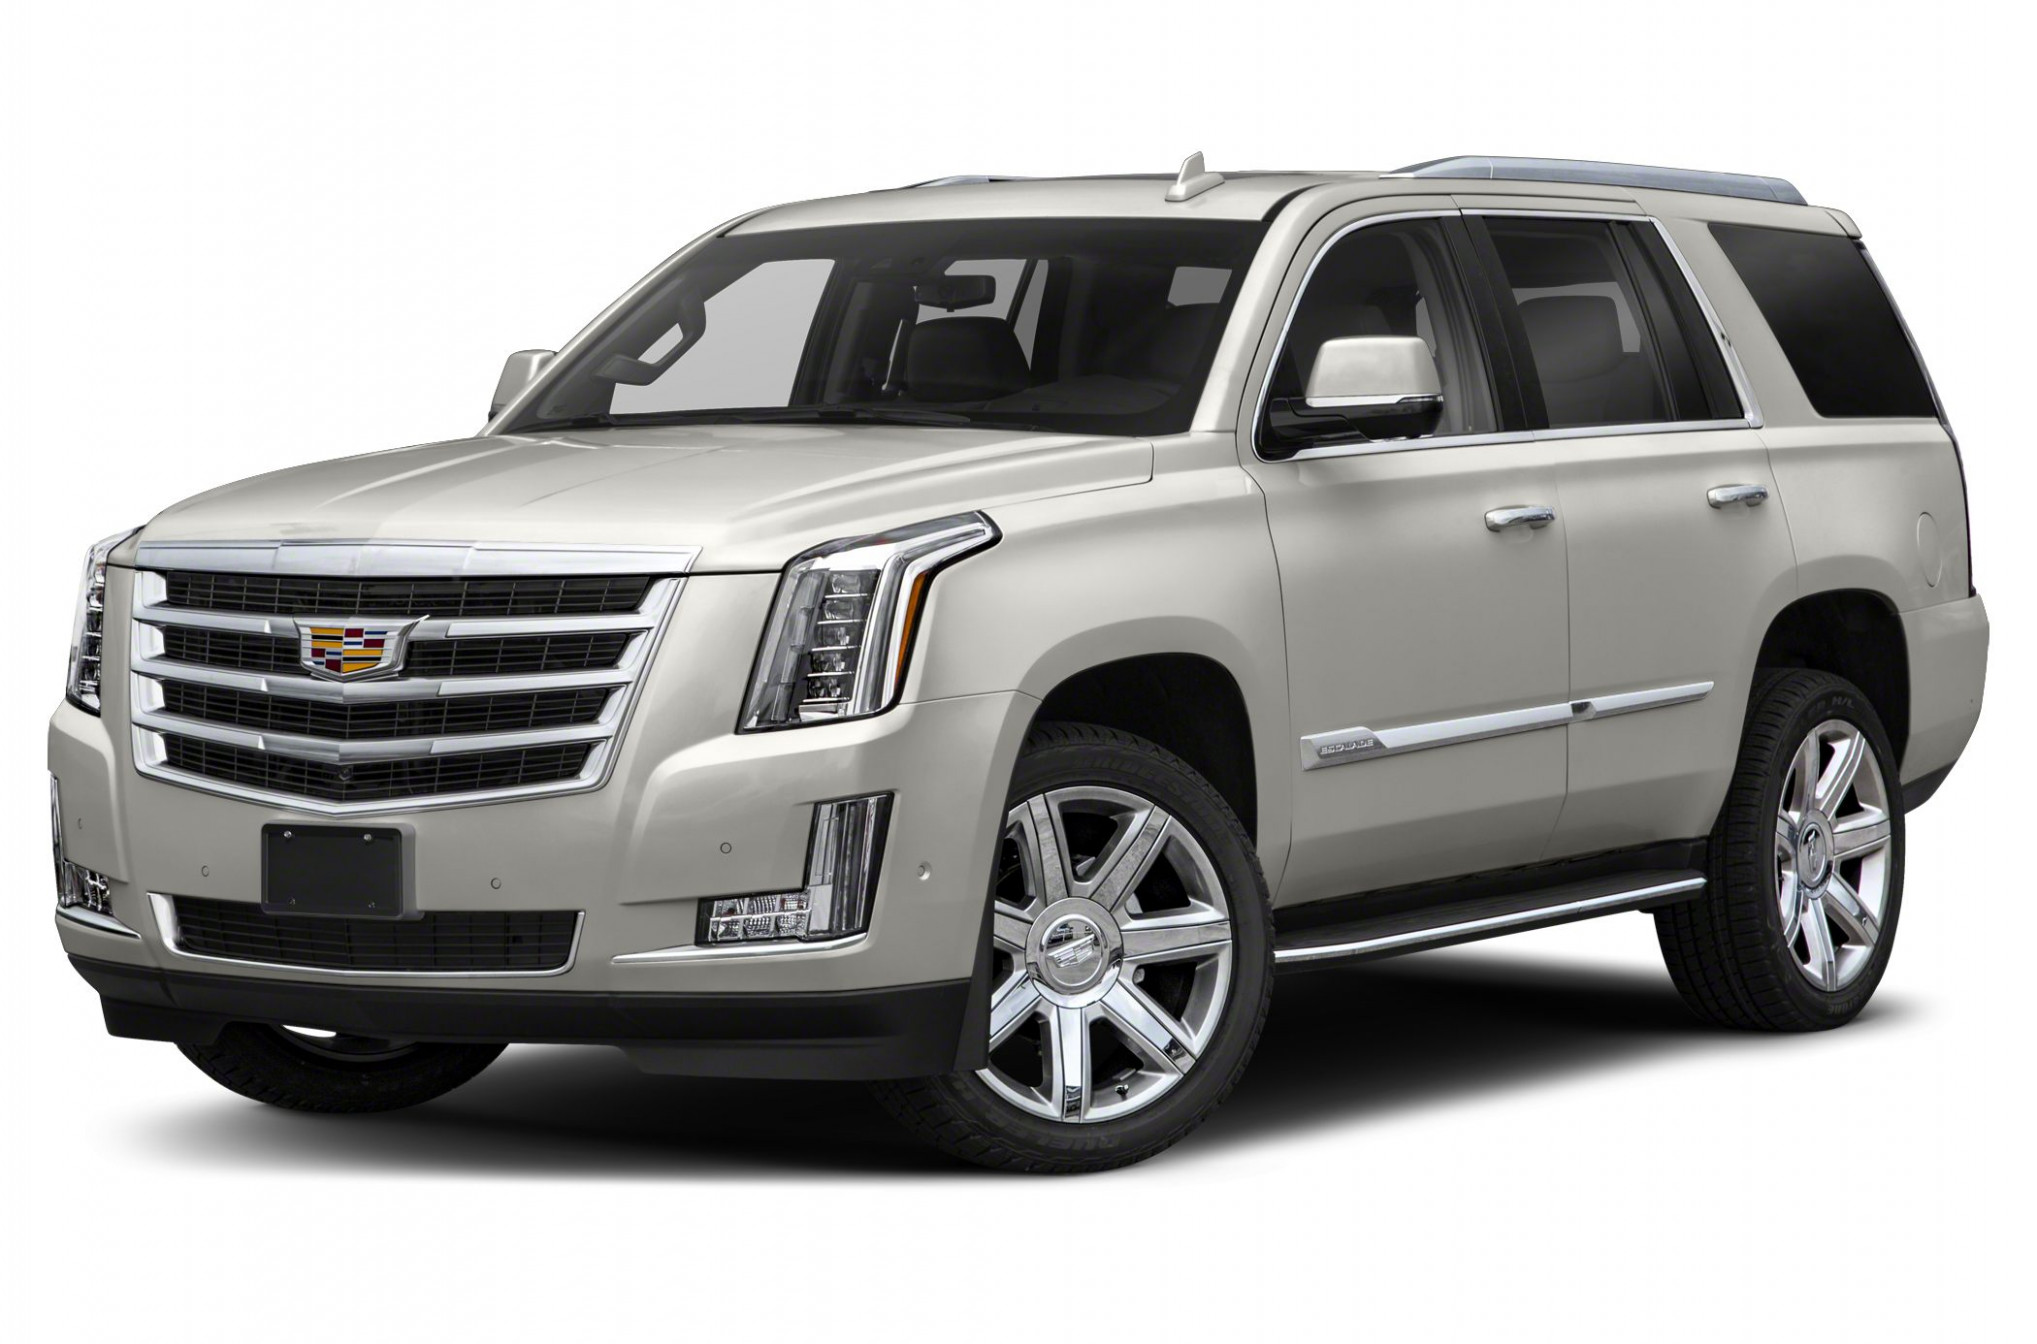 8 Cadillac Escalade Base 8x8 Specs and Prices - cadillac premium care 2020